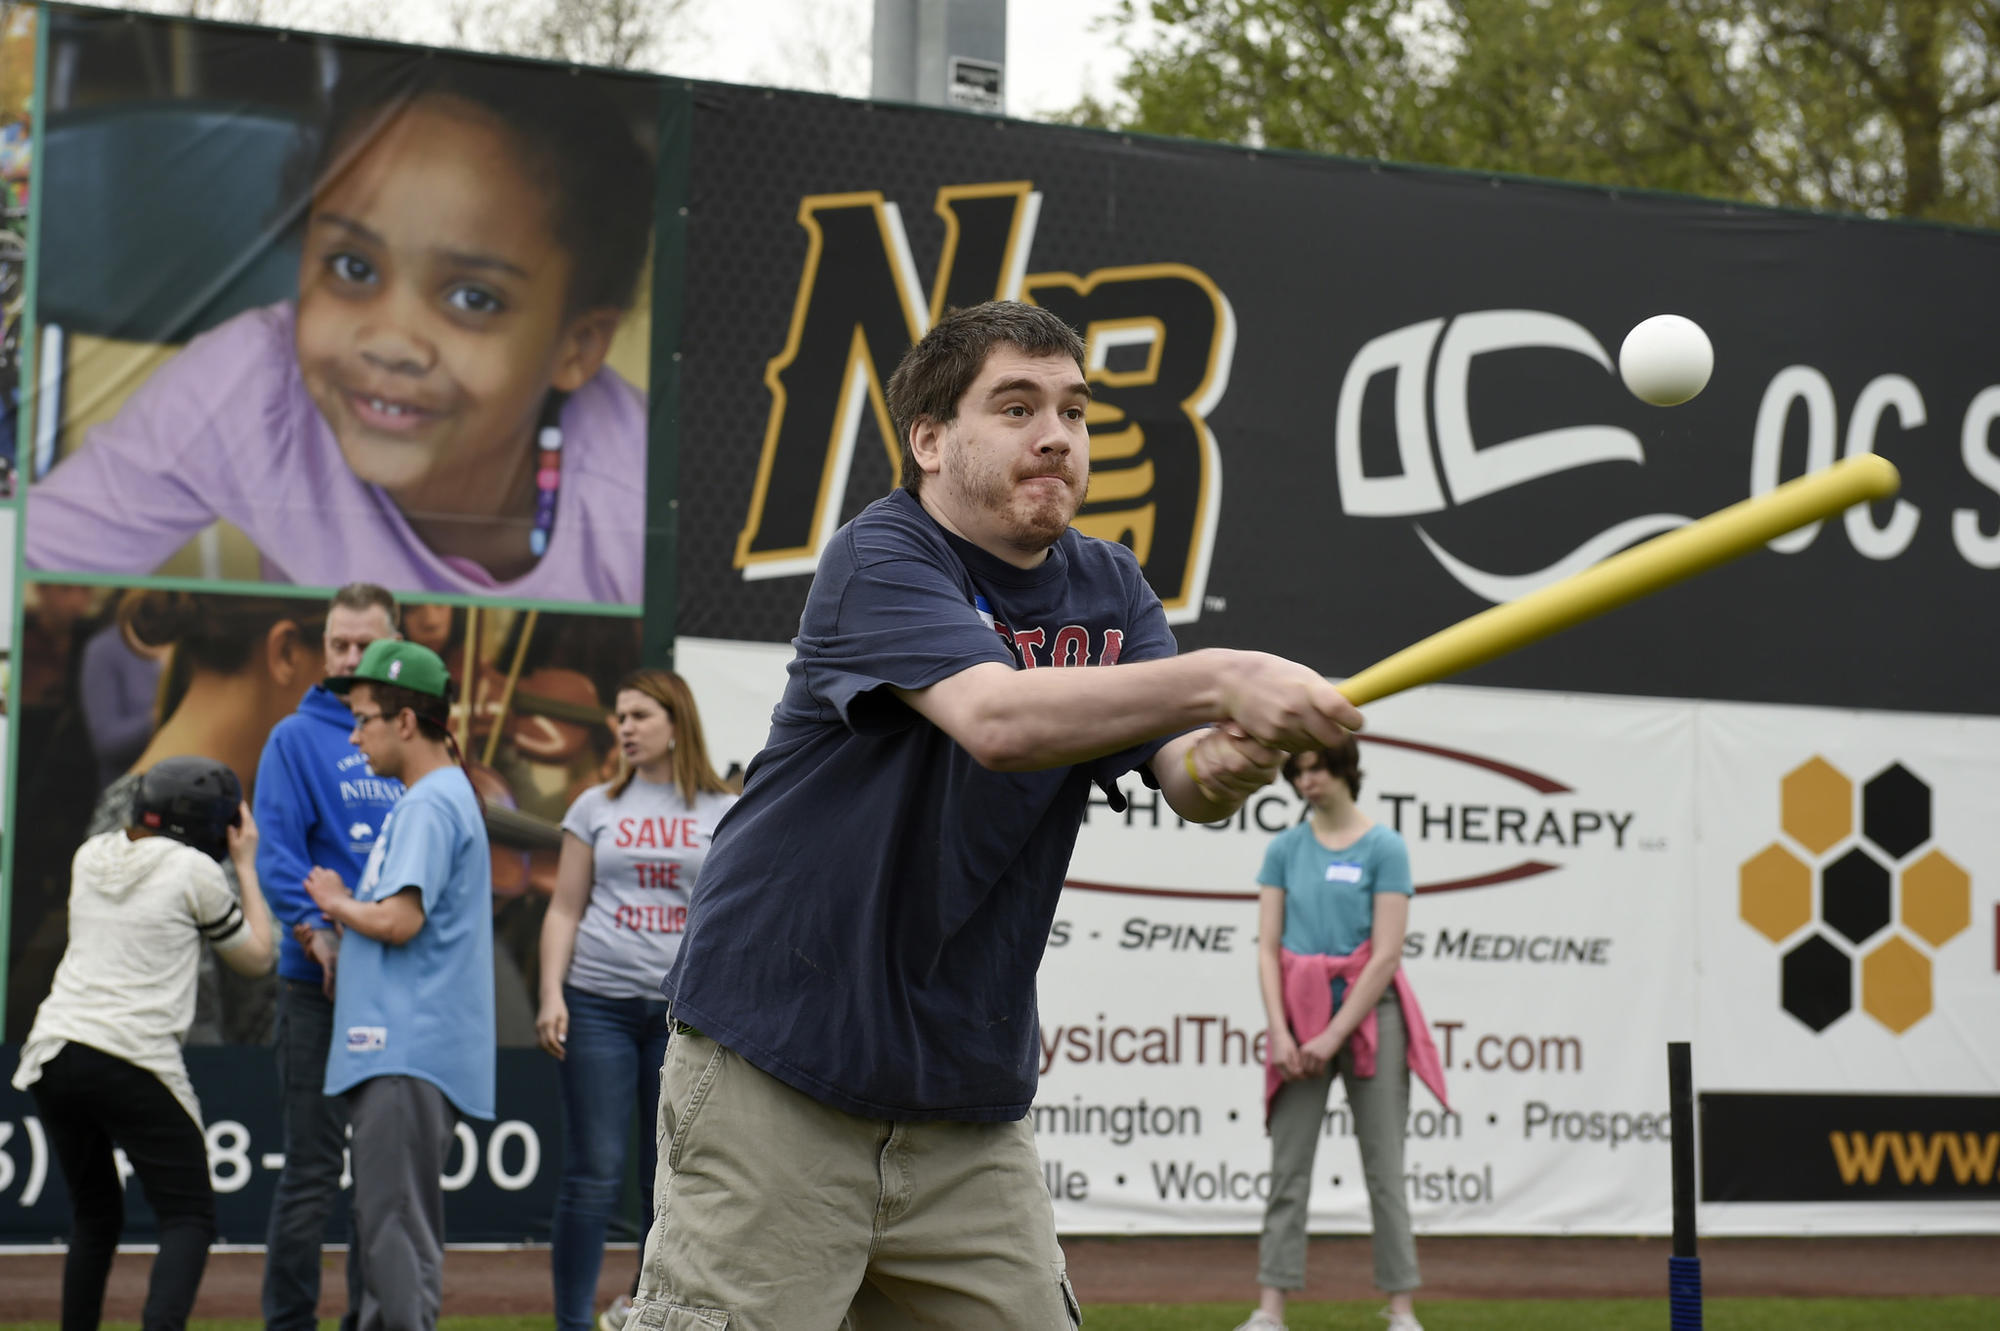 Disabled Fans Sample Some On-Field Play With The New Britain Bees - Hartford Courant